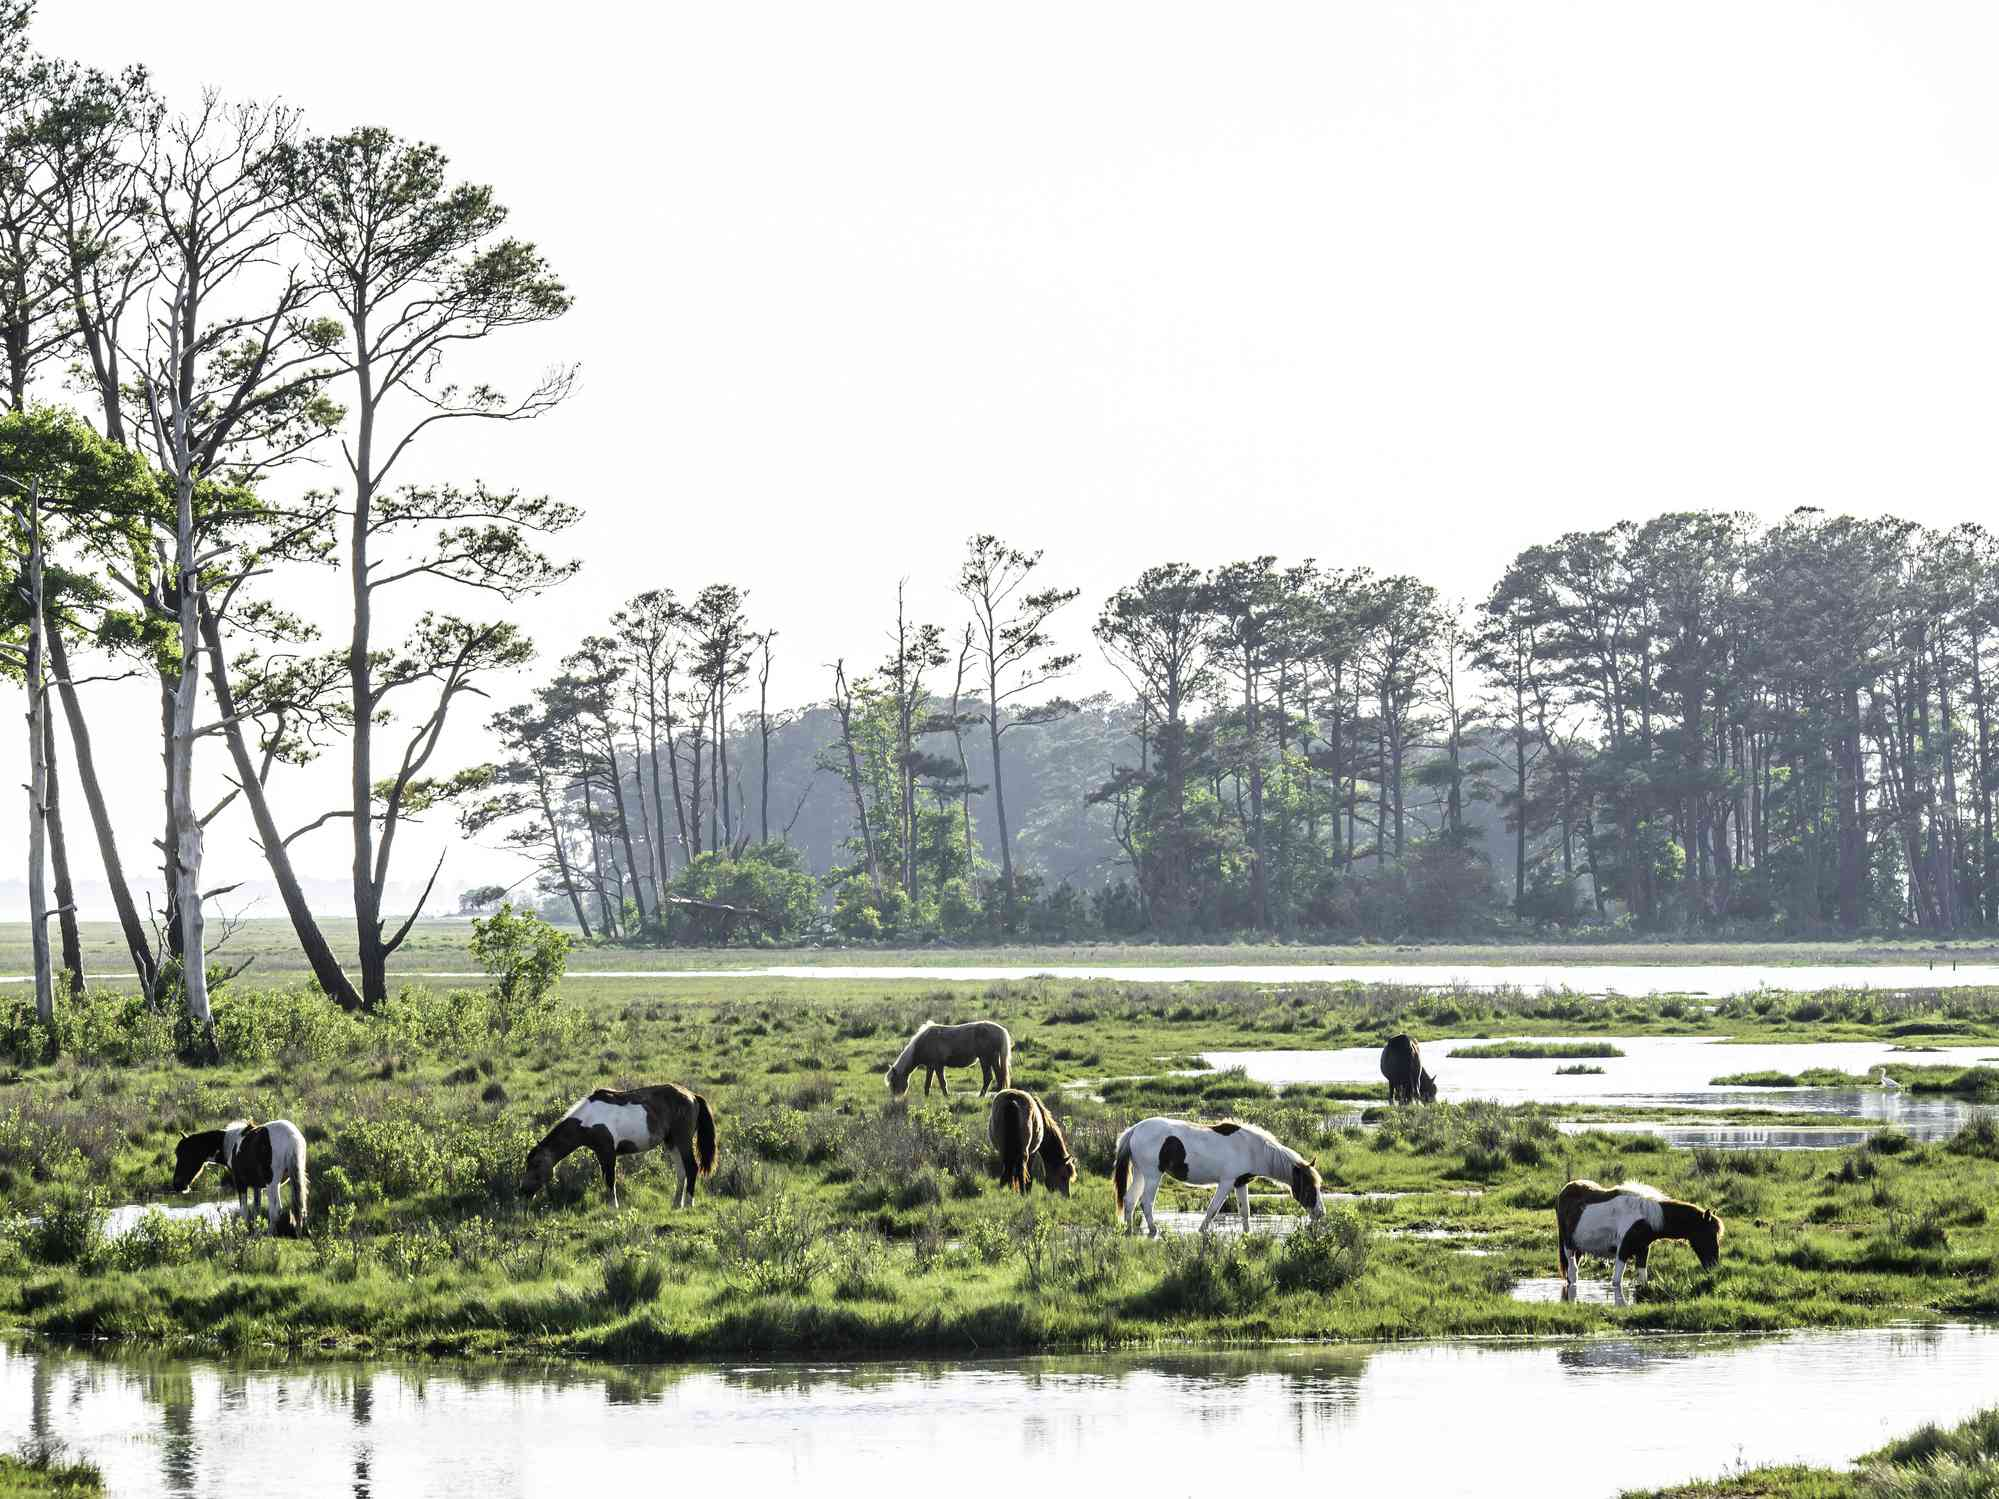 Ponies grazing Chincoteague National Wildlife Reserve